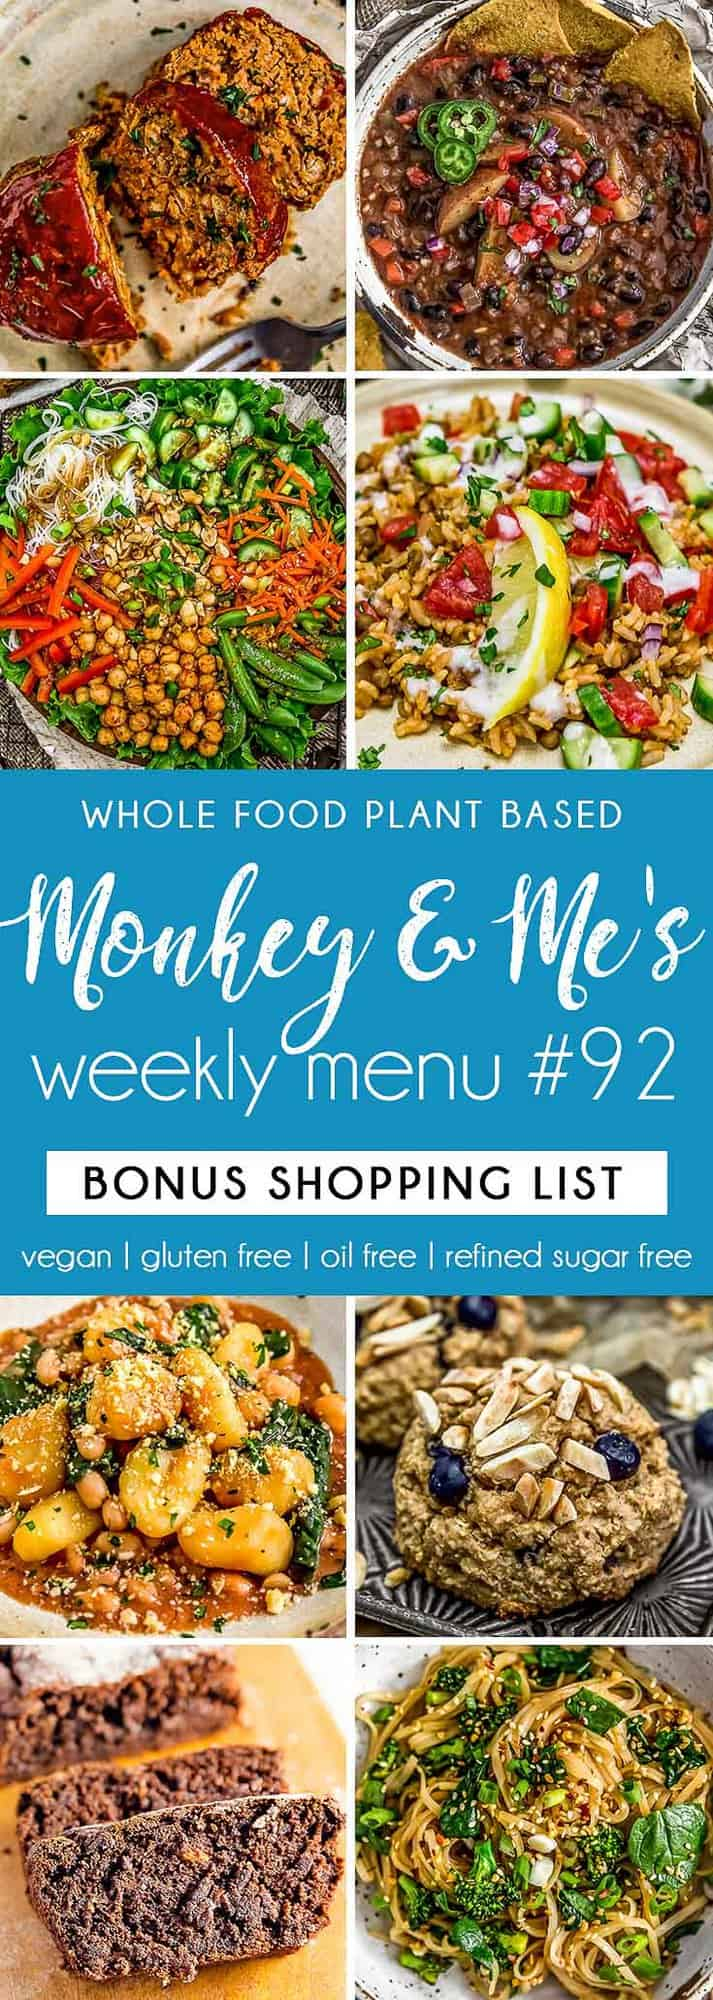 Monkey and Me's Menu 92 featuring 8 recipes